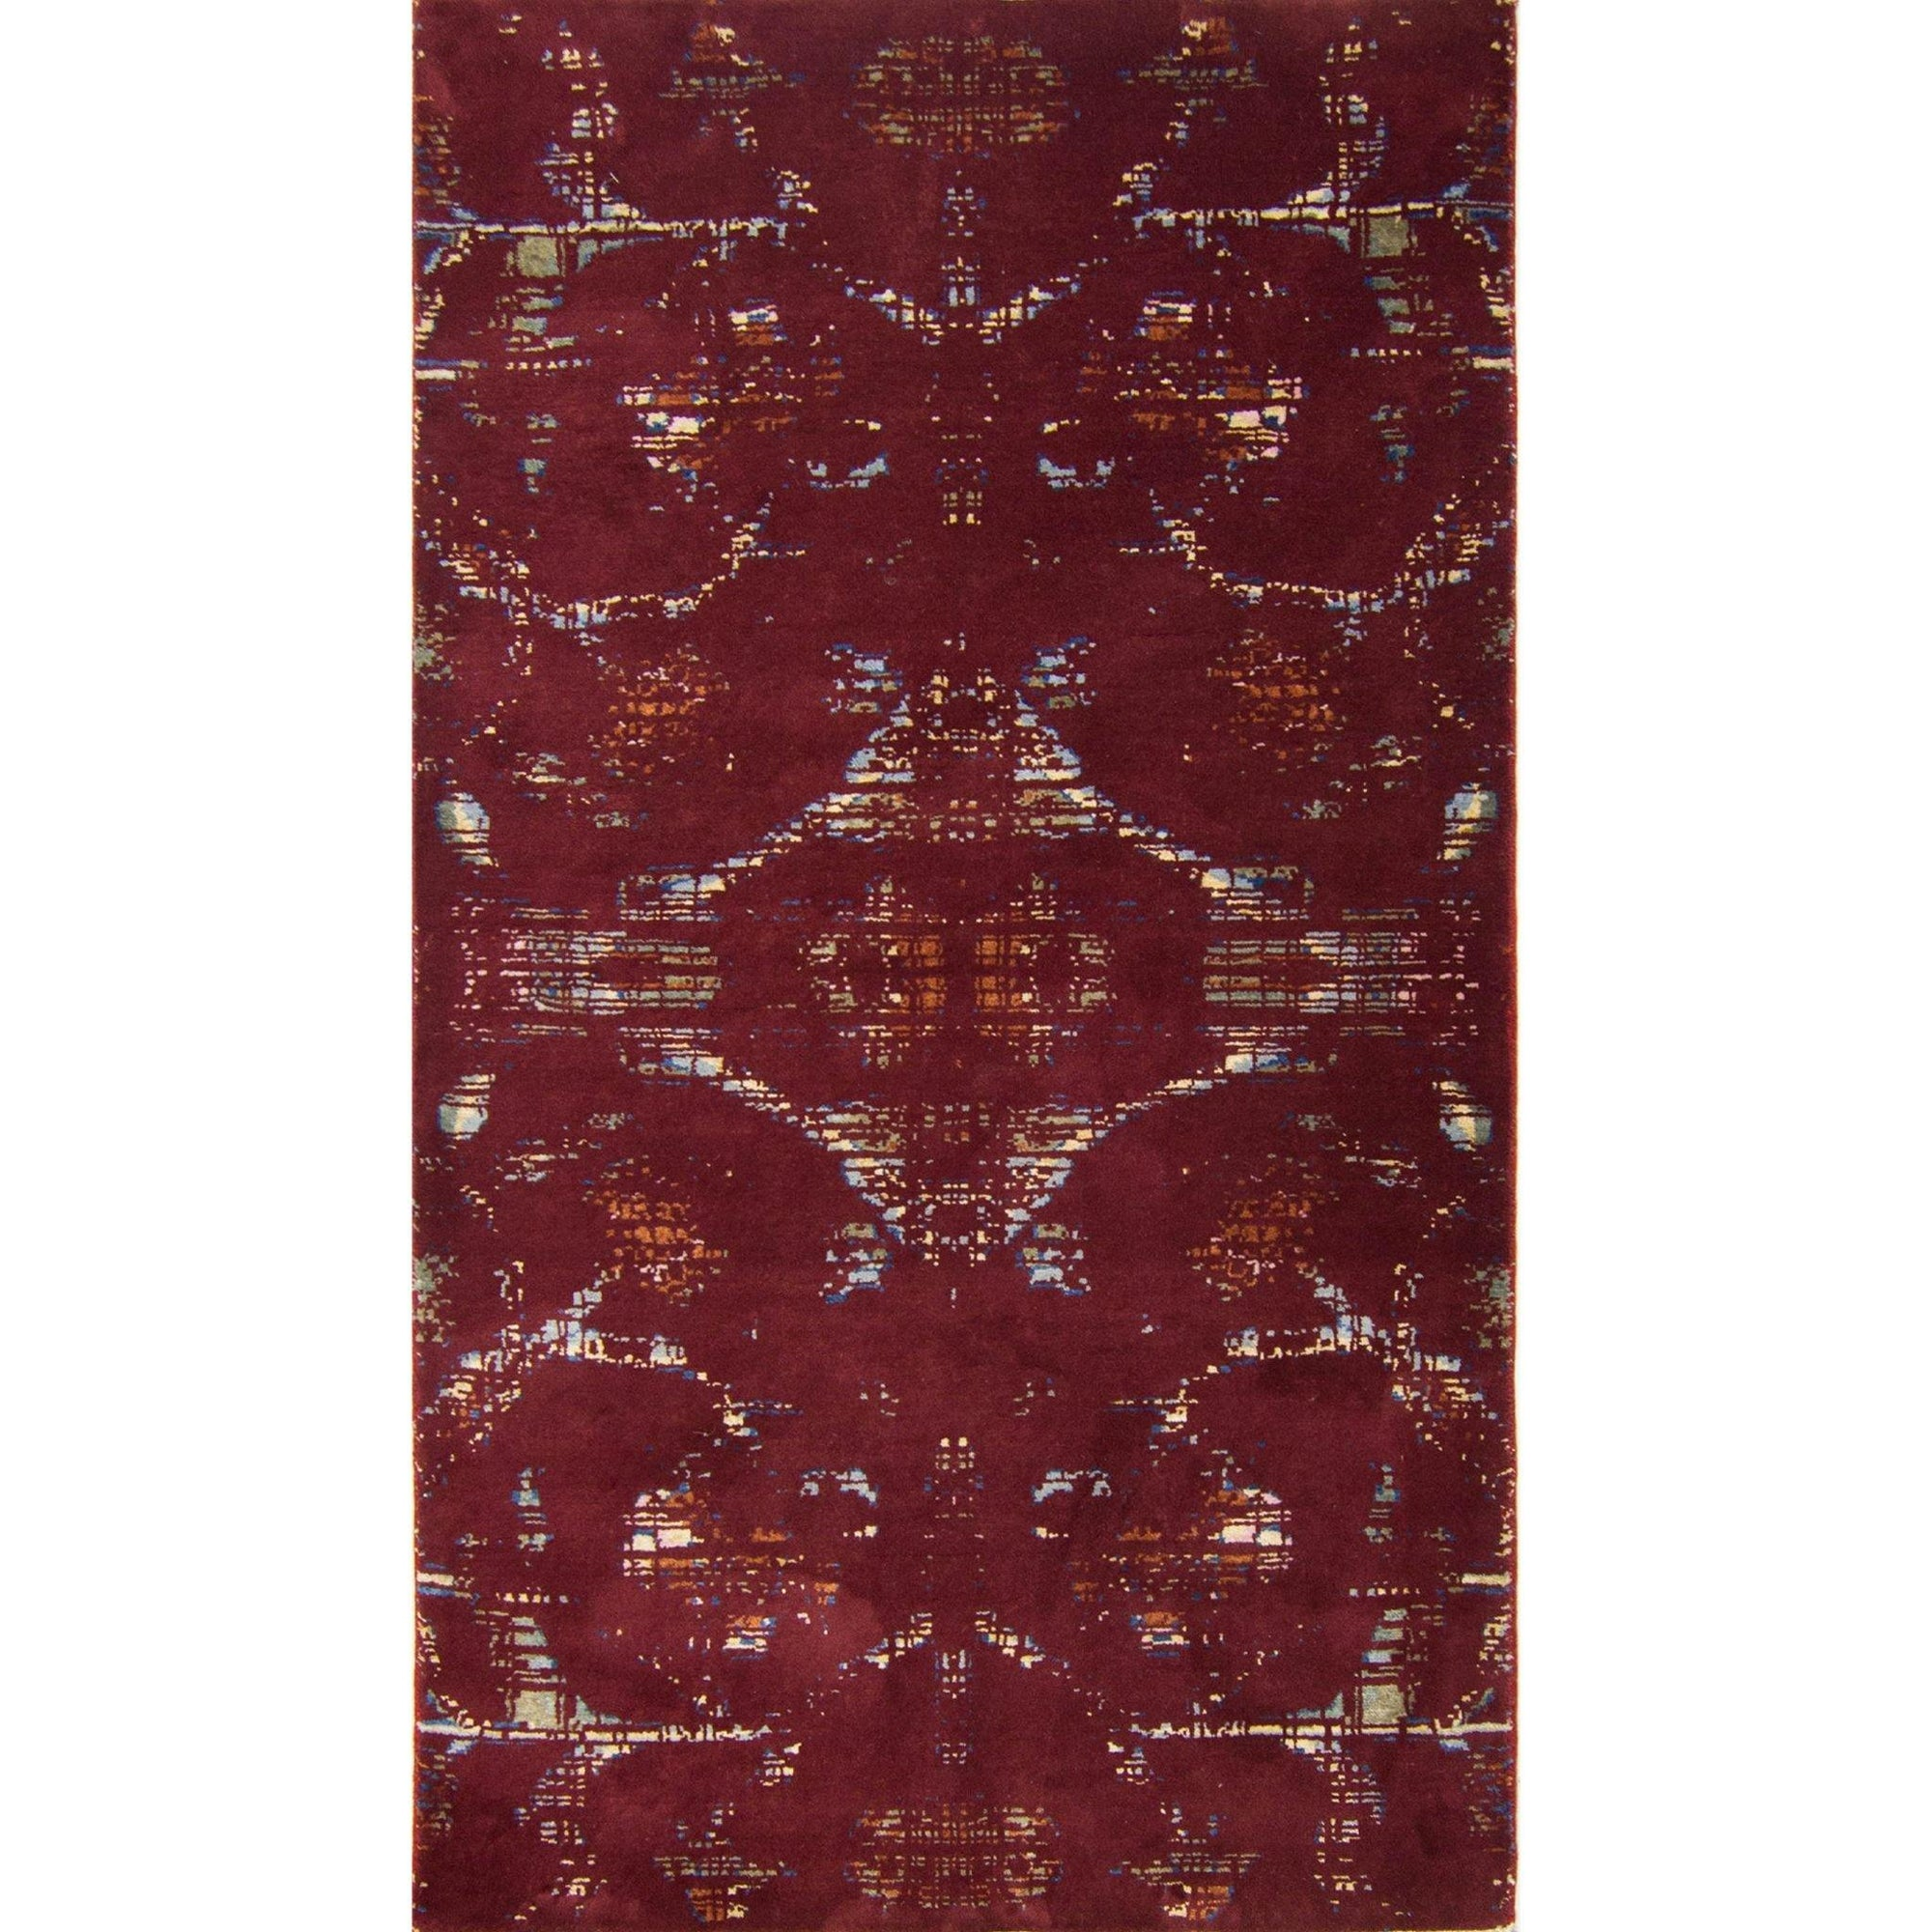 Modern Hand-knotted Wool and Bamboo Silk Galaxy Rug 94cm x 164cm Persian-Rug | House-of-Haghi | NewMarket | Auckland | NZ | Handmade Persian Rugs | Hand Knotted Persian Rugs